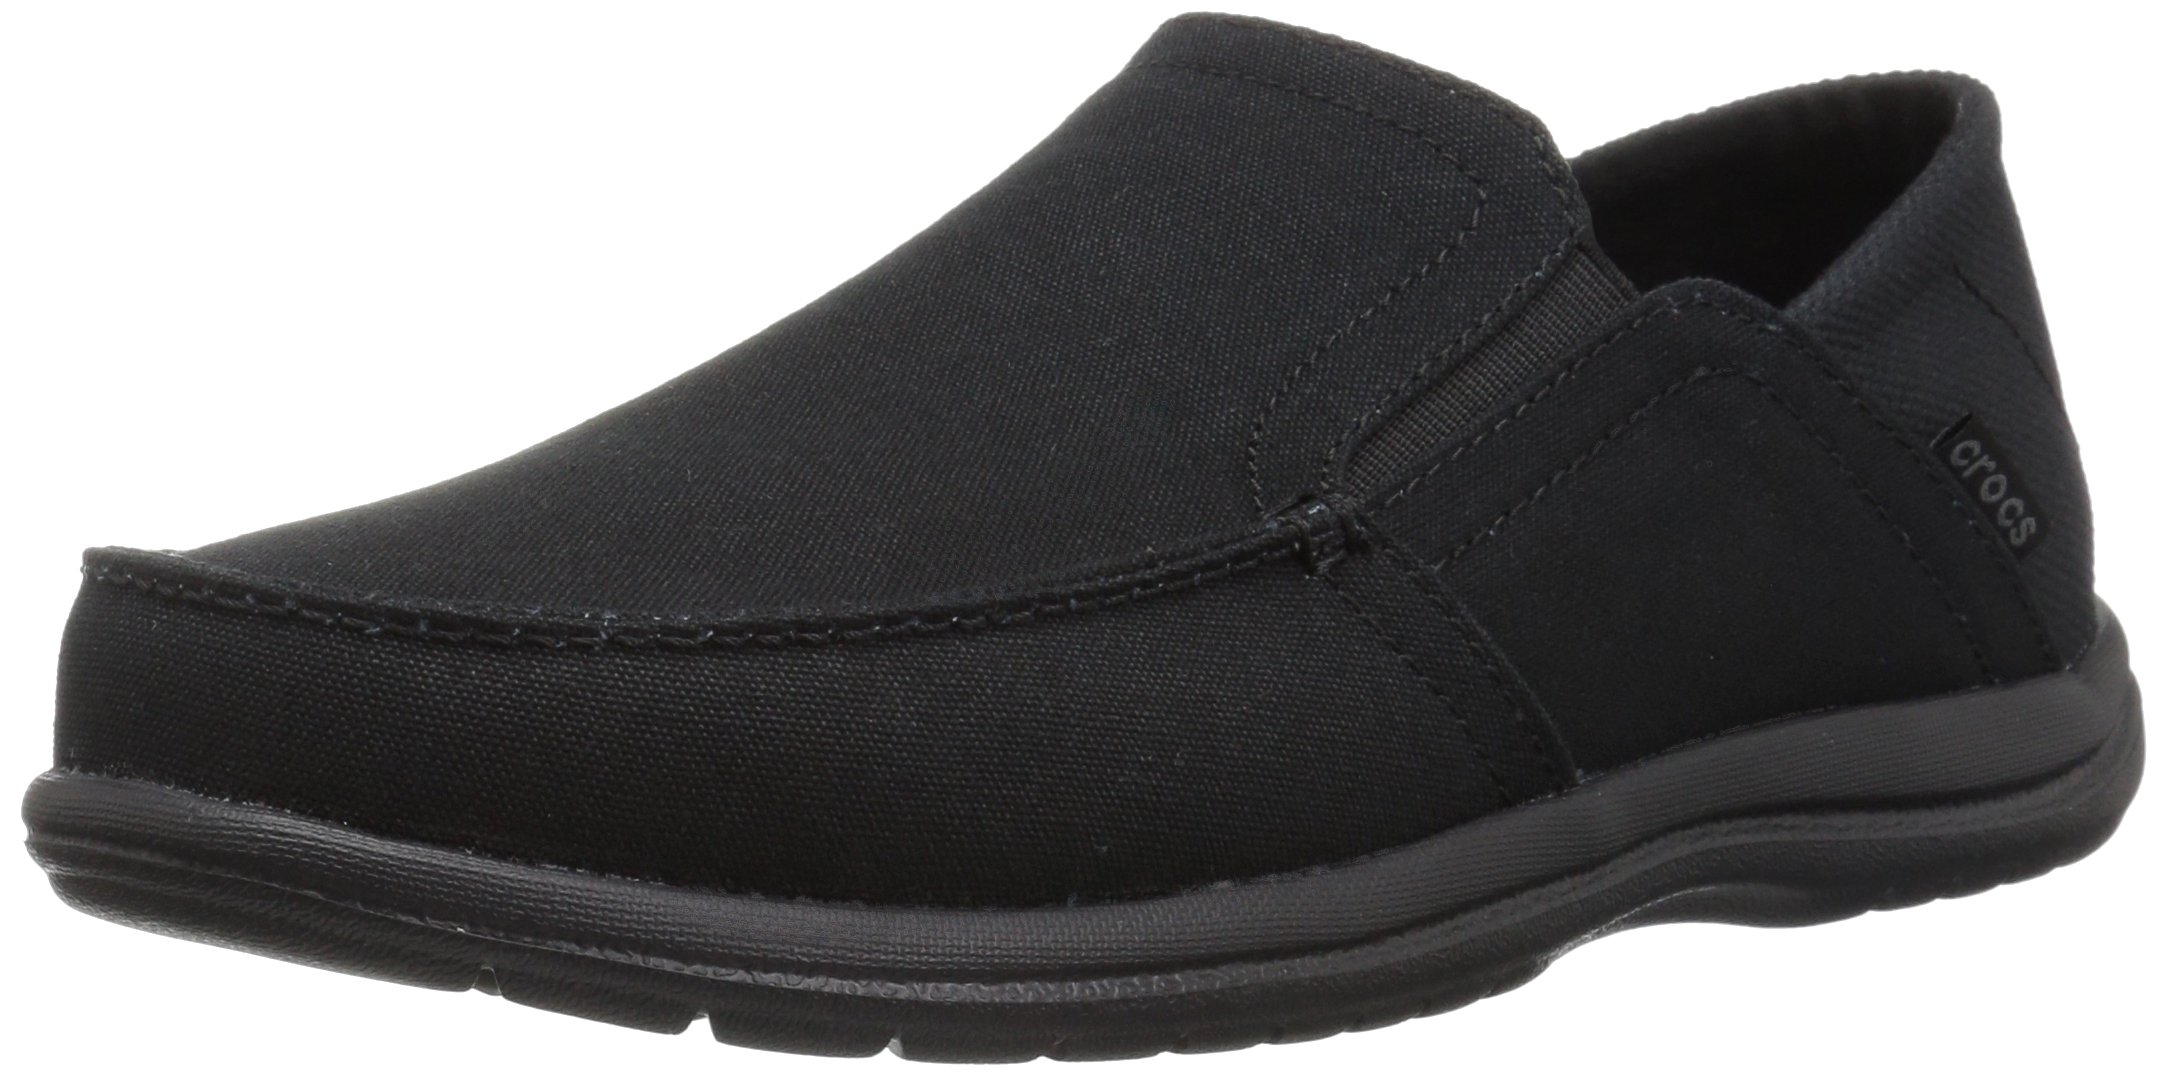 Crocs Men's Santa Cruz Convertible Slip-on Loafer Flat, Black/Black, 10